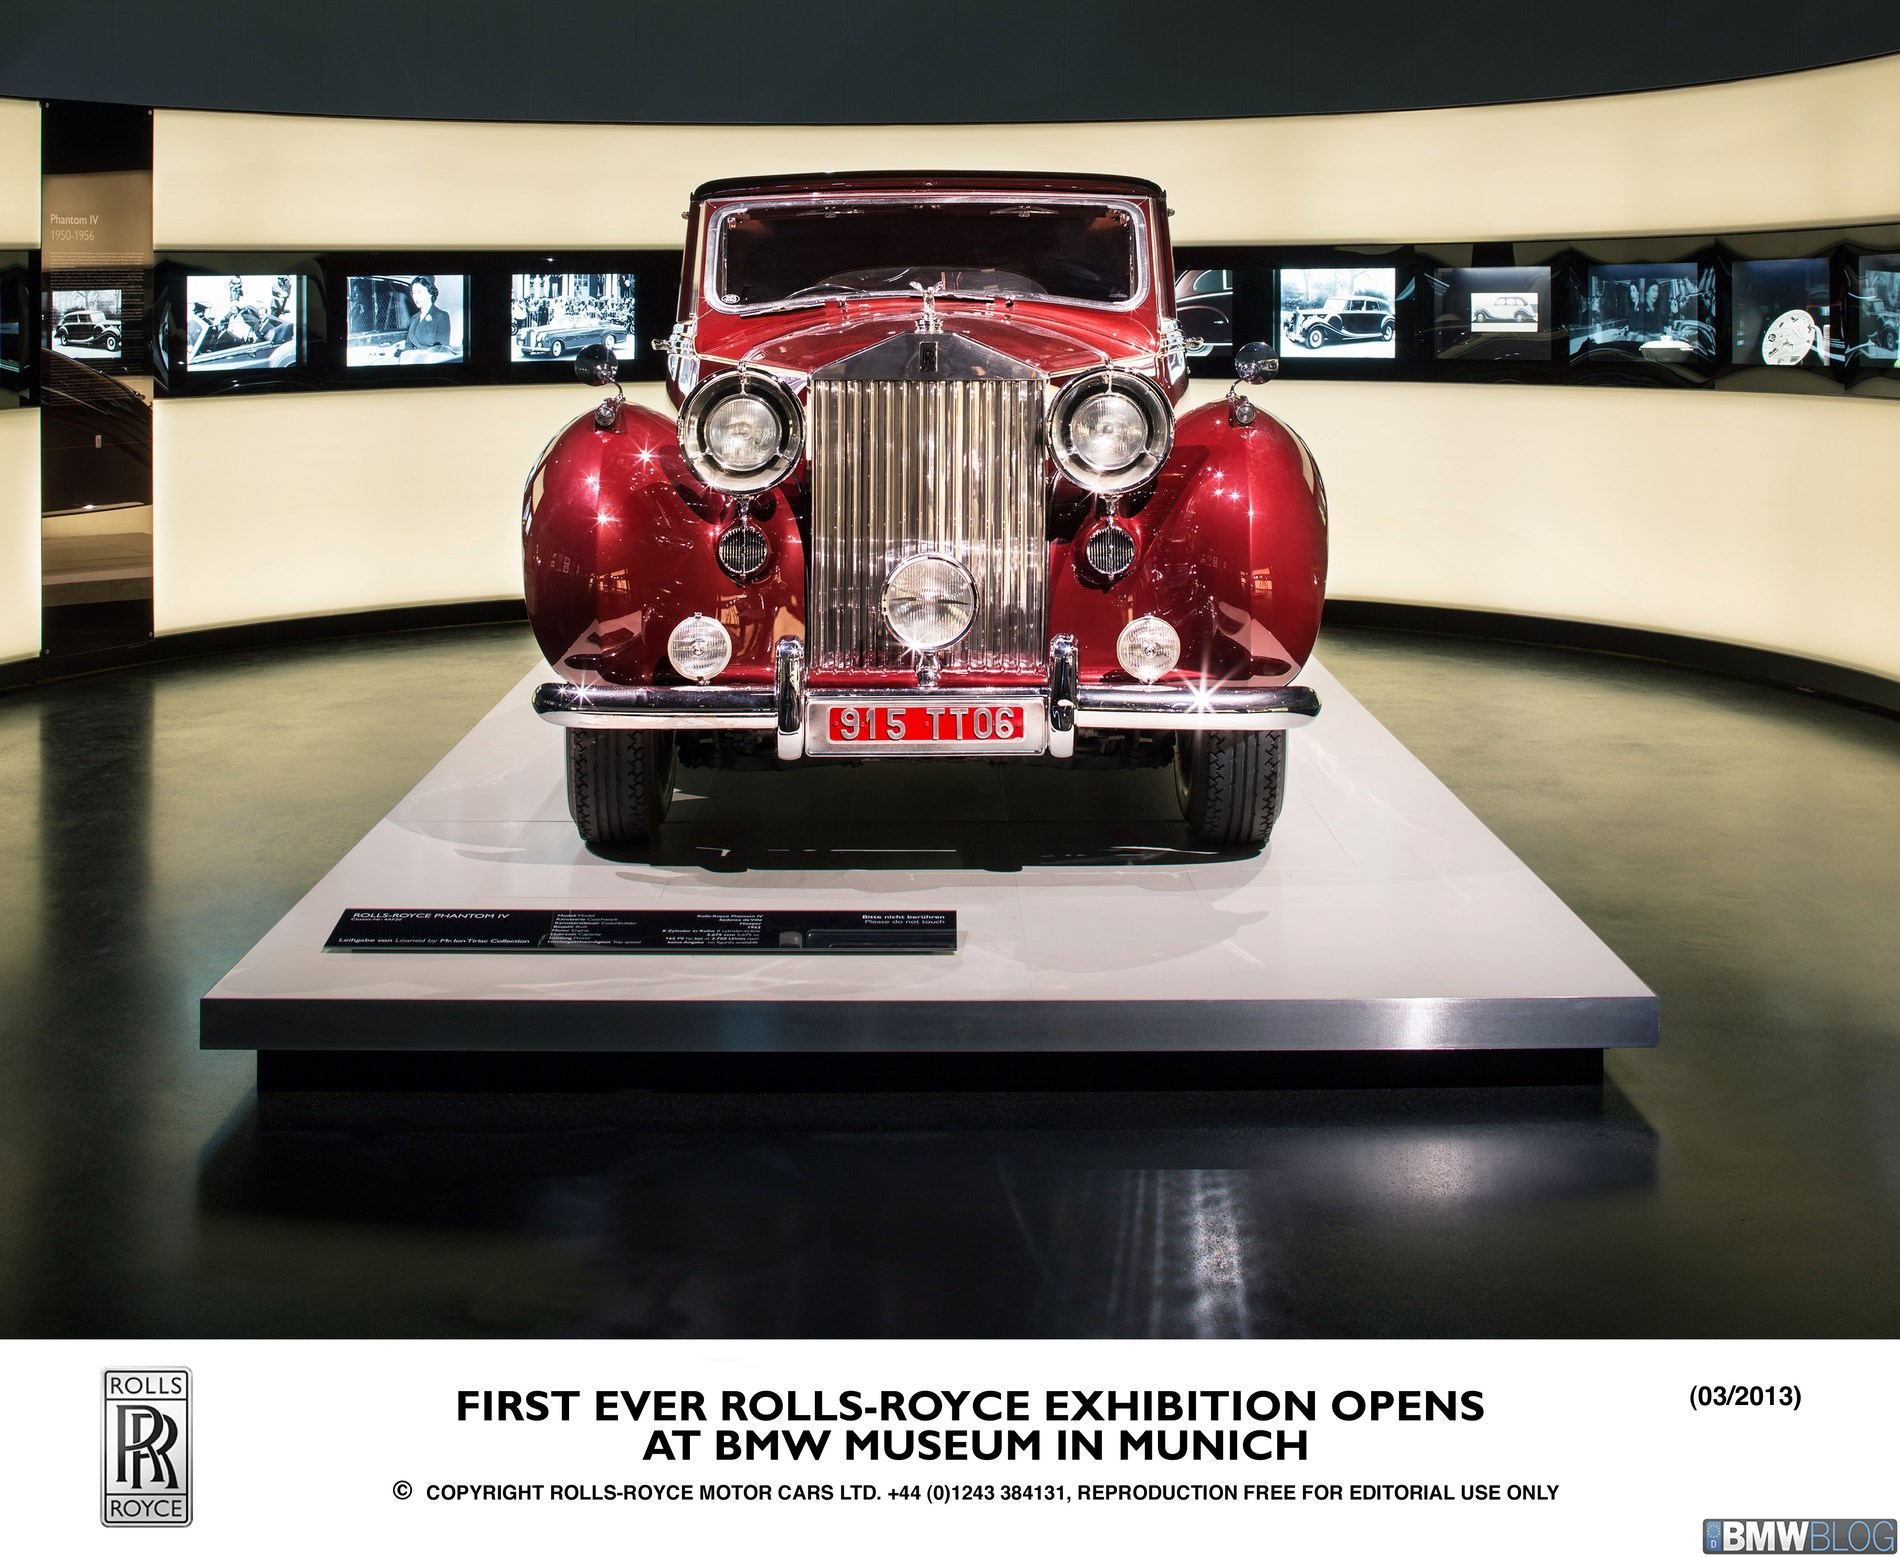 First ever Rolls-Royce exhibition at the BMW Museum